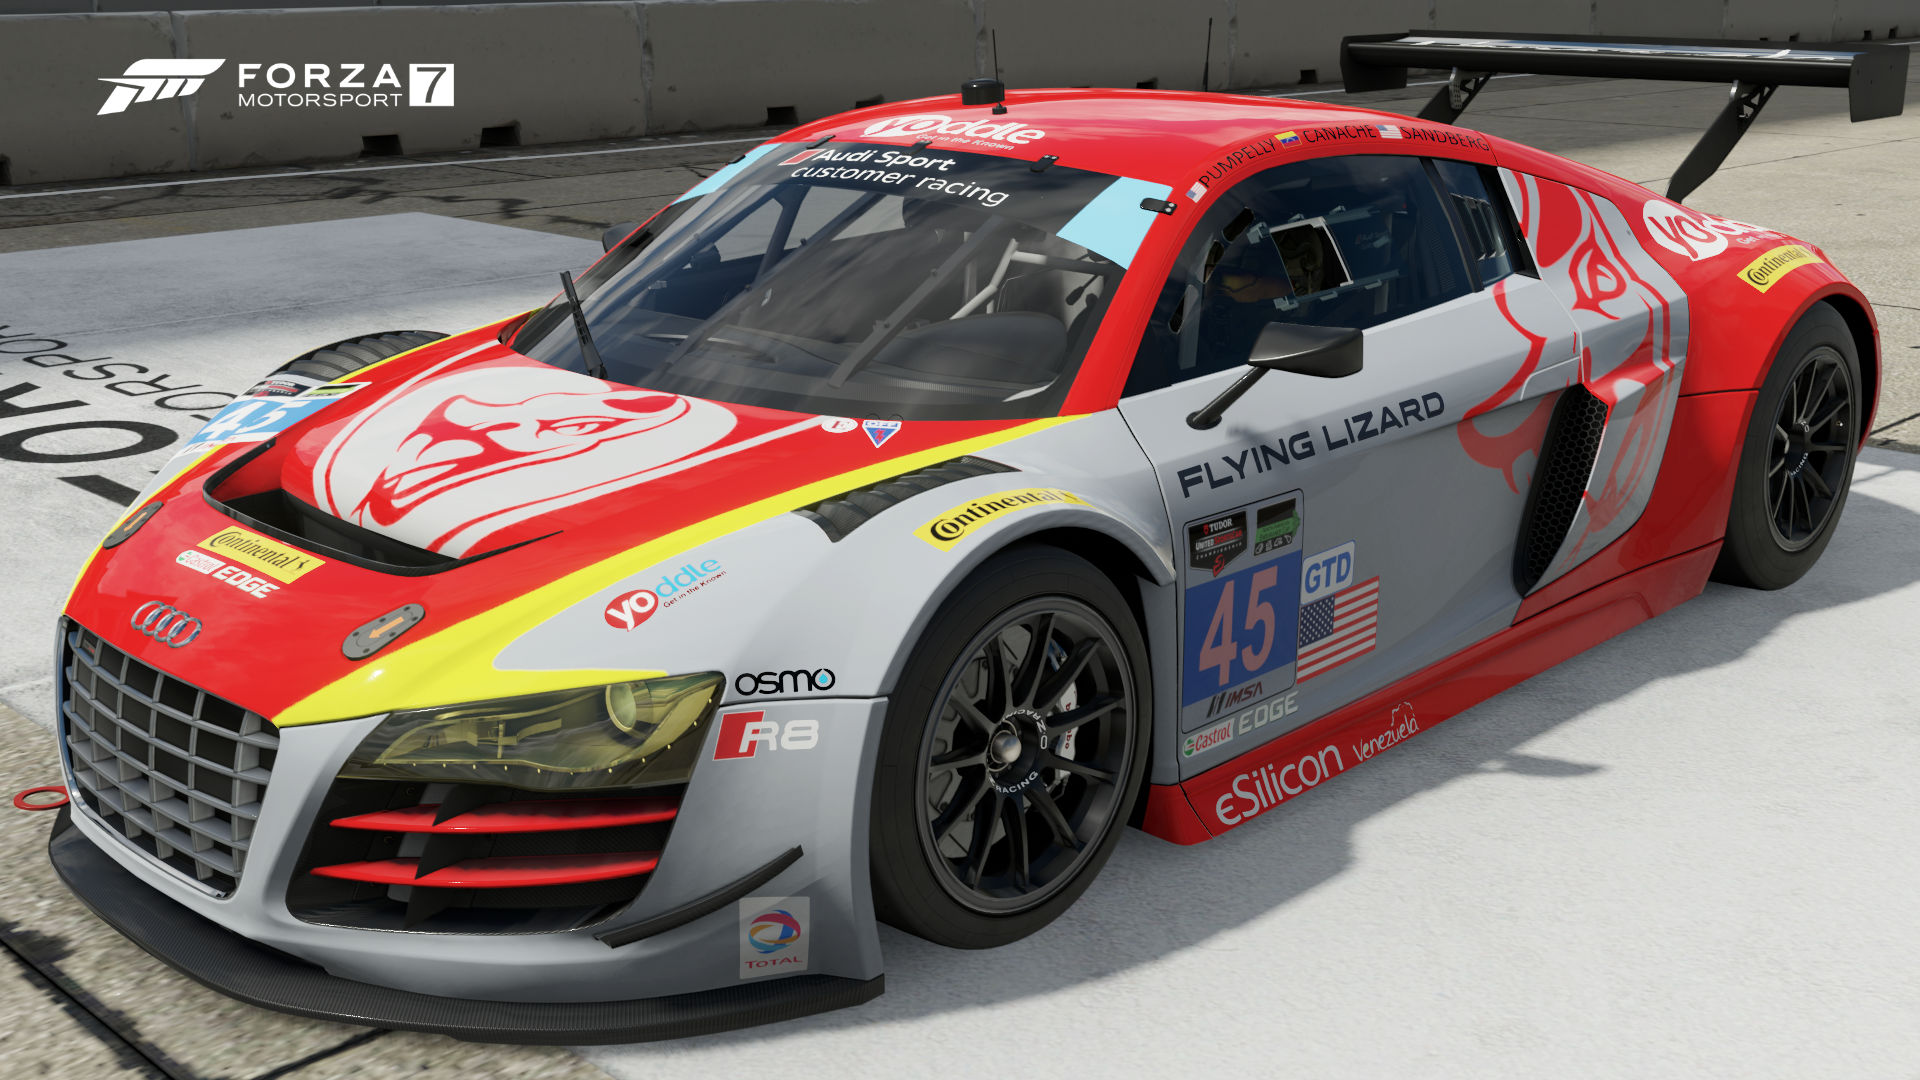 audi 45 flying lizard motorsports r8 lms ultra forza. Black Bedroom Furniture Sets. Home Design Ideas